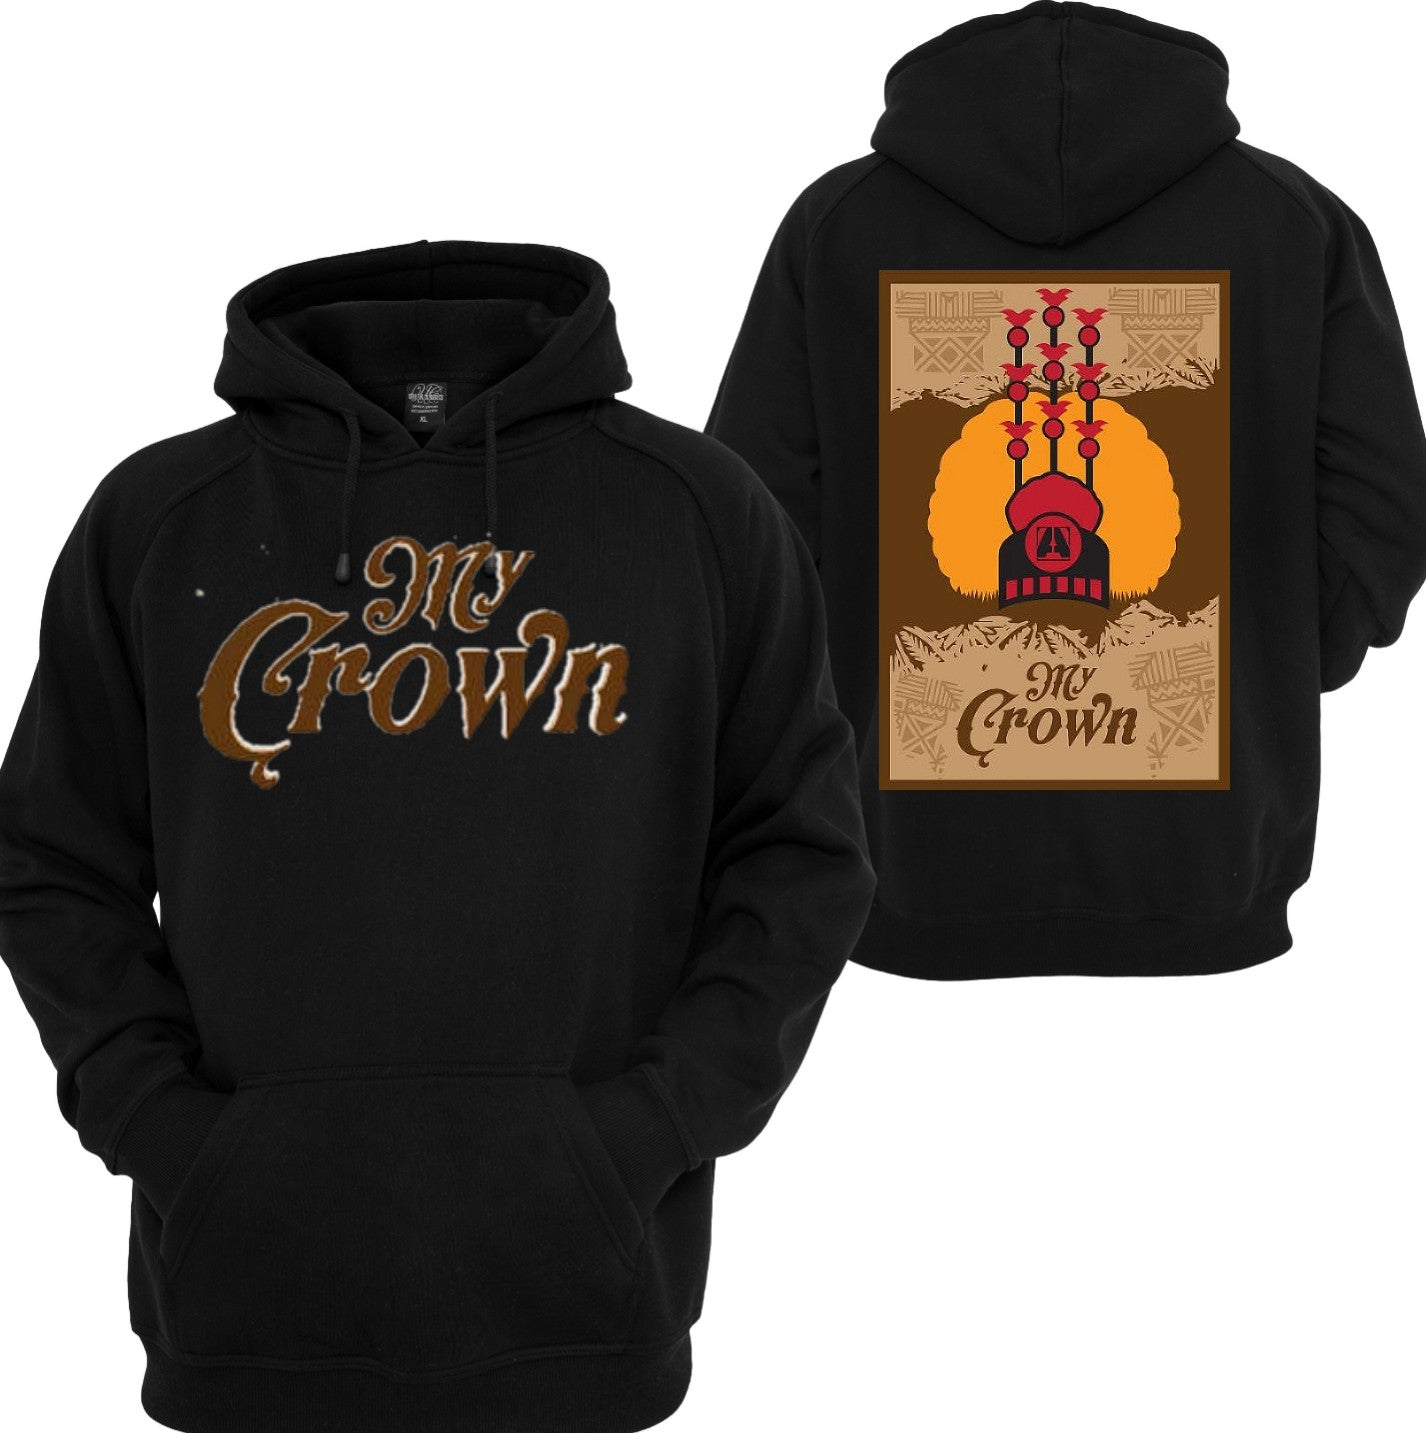 My Crown Hoodies